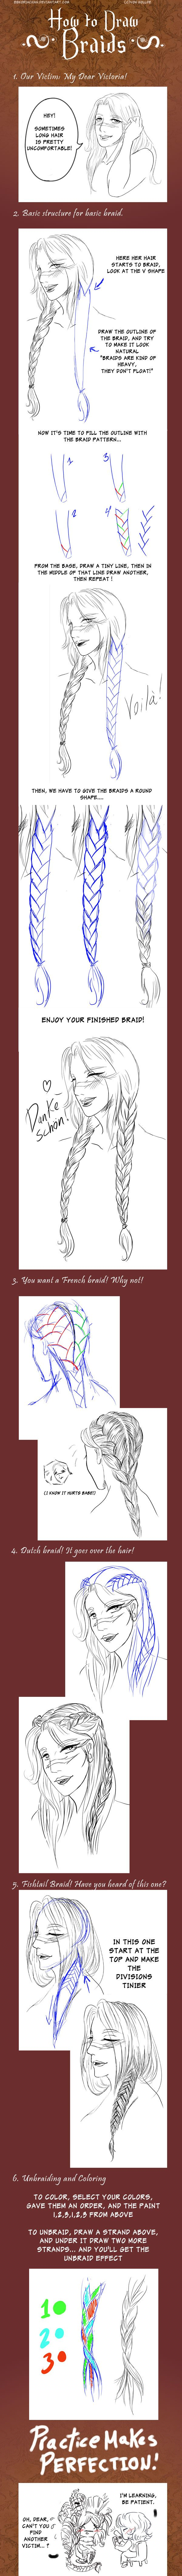 + How to draw Braids + by VonHollde.deviantart.com on @deviantART I LOVE THIS I LOVETHIS ILOVEEEEEEEEEEEETHIS